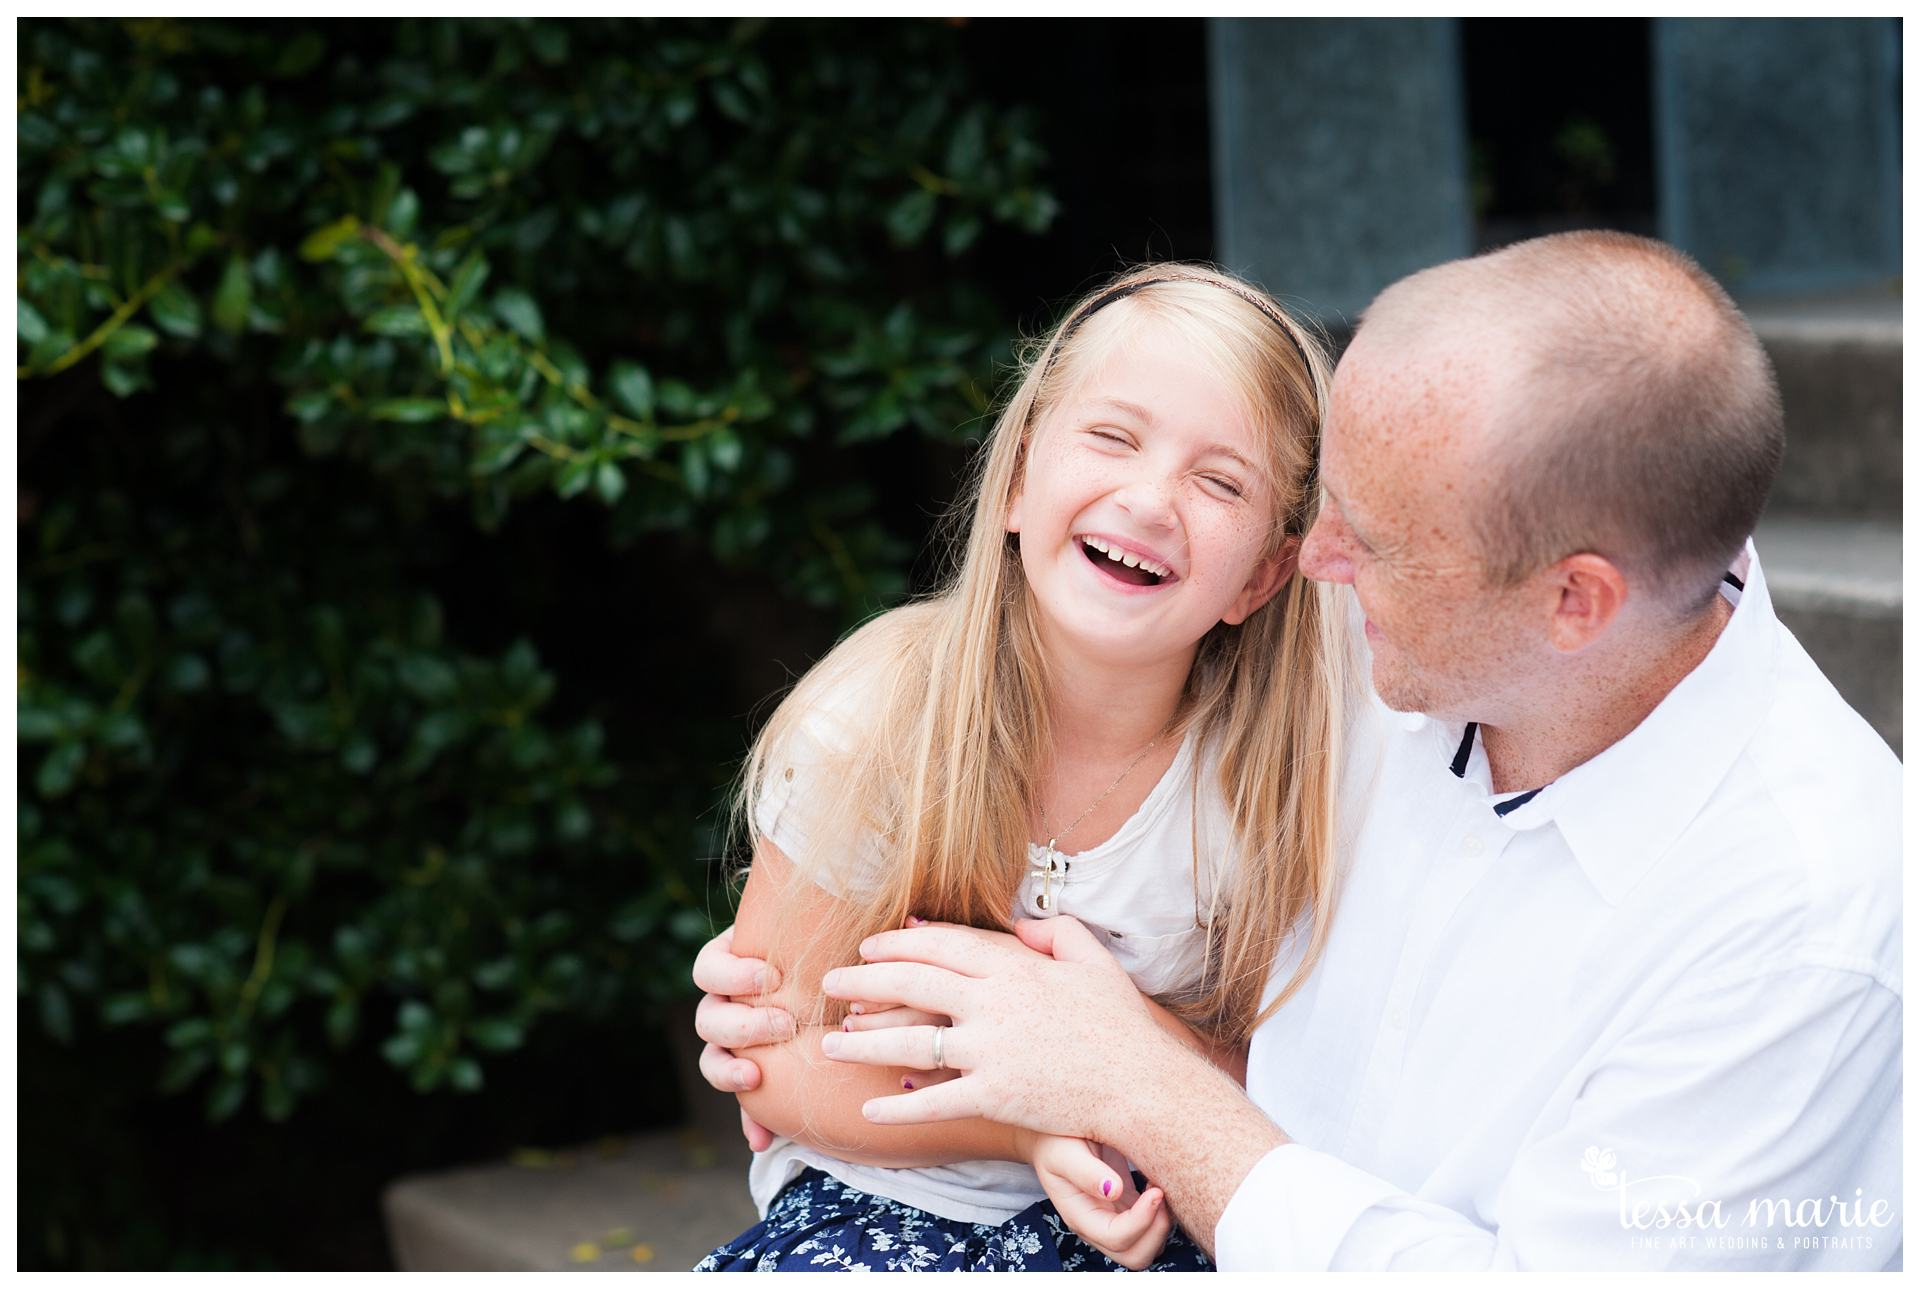 tessa_marie_weddings_legacy_story_focused_wedding_pictures_atlanta_wedding_photographer_family_pictures_portrait_Fine_art_memories_mothers_day_spring_moments_0275